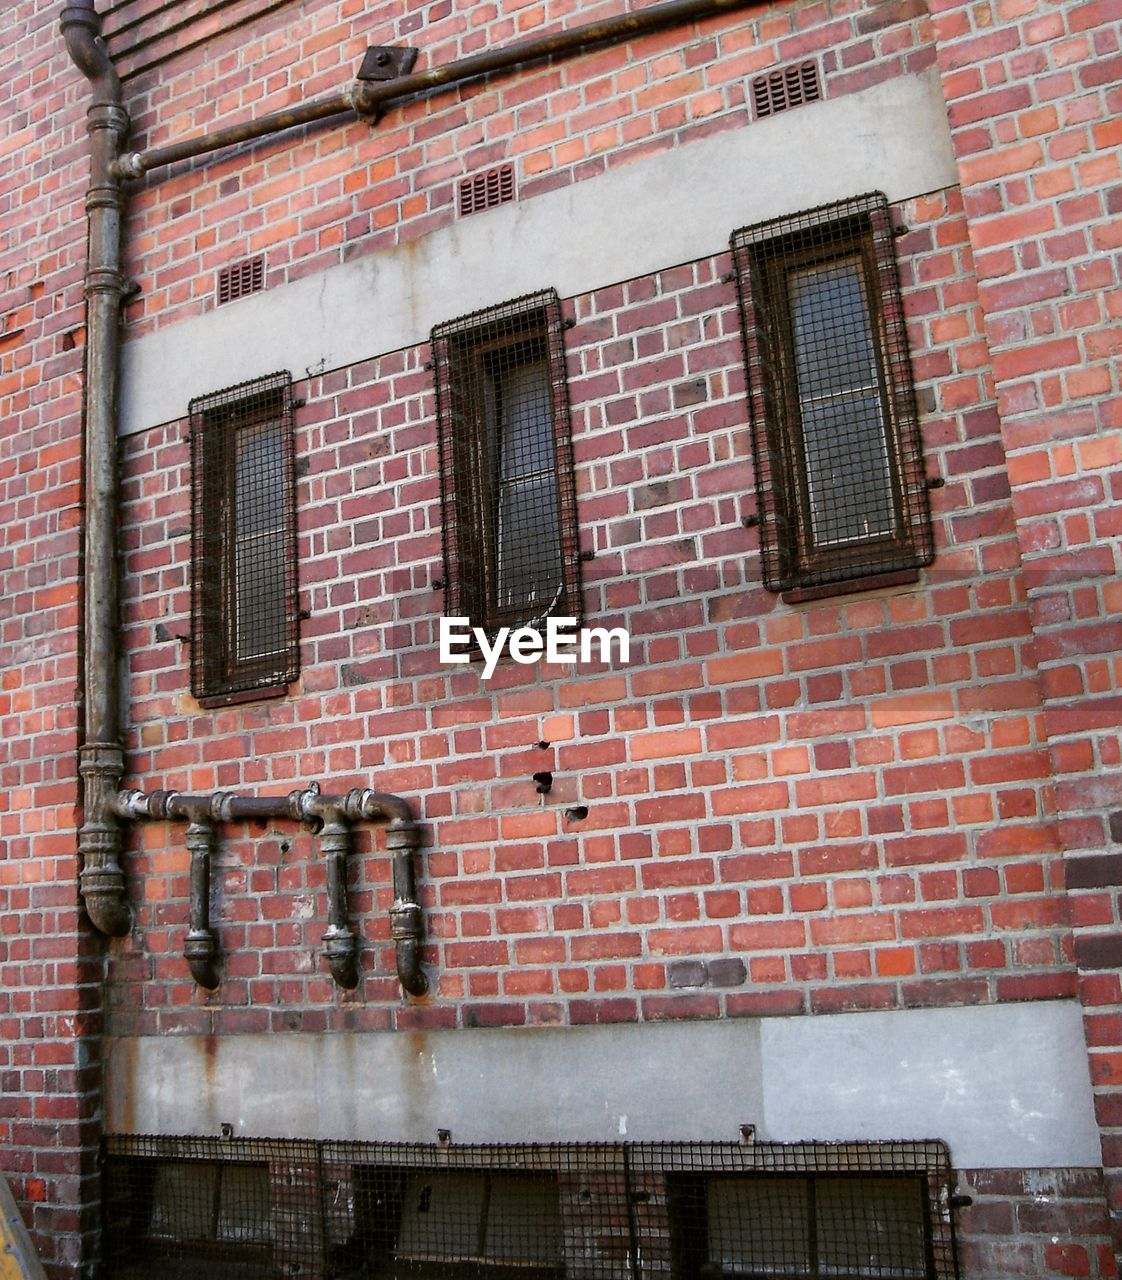 window, building exterior, architecture, brick wall, built structure, outdoors, no people, day, city